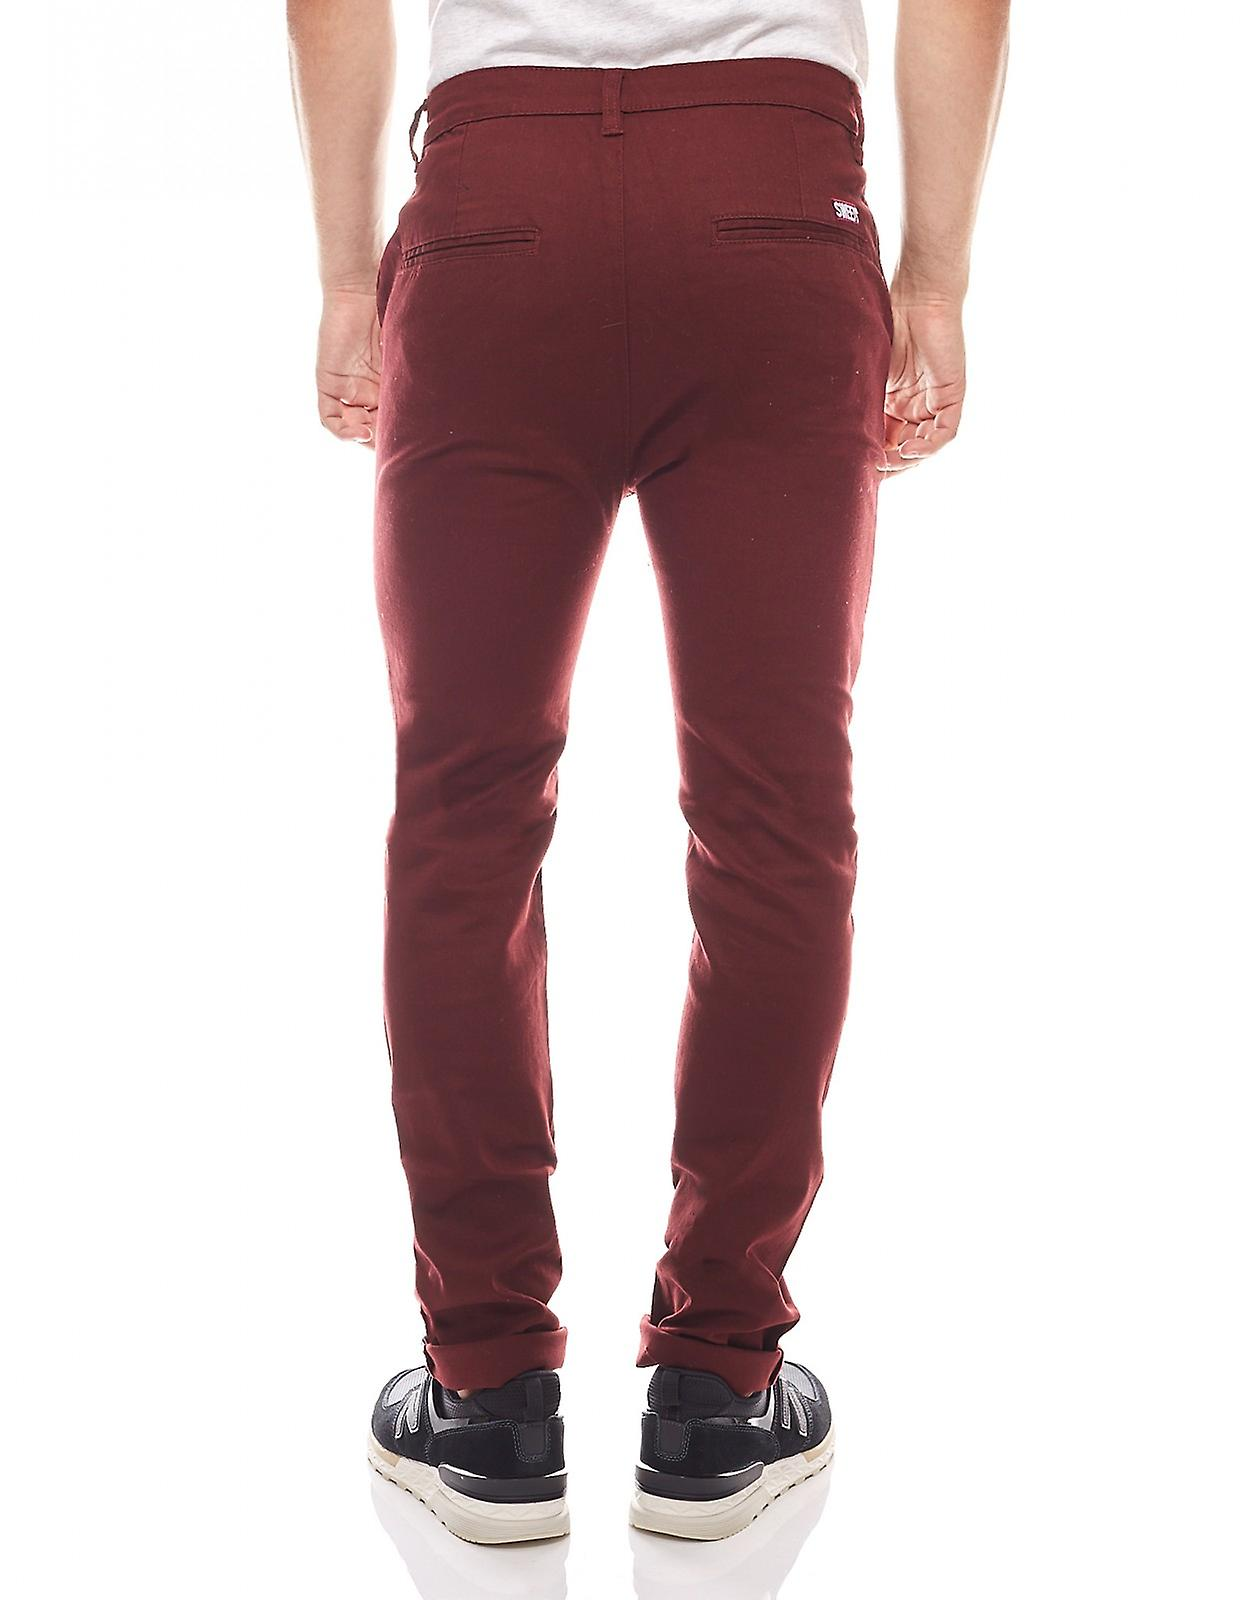 sweet sktbs chino herren jeans rot the chinos bordeaux. Black Bedroom Furniture Sets. Home Design Ideas